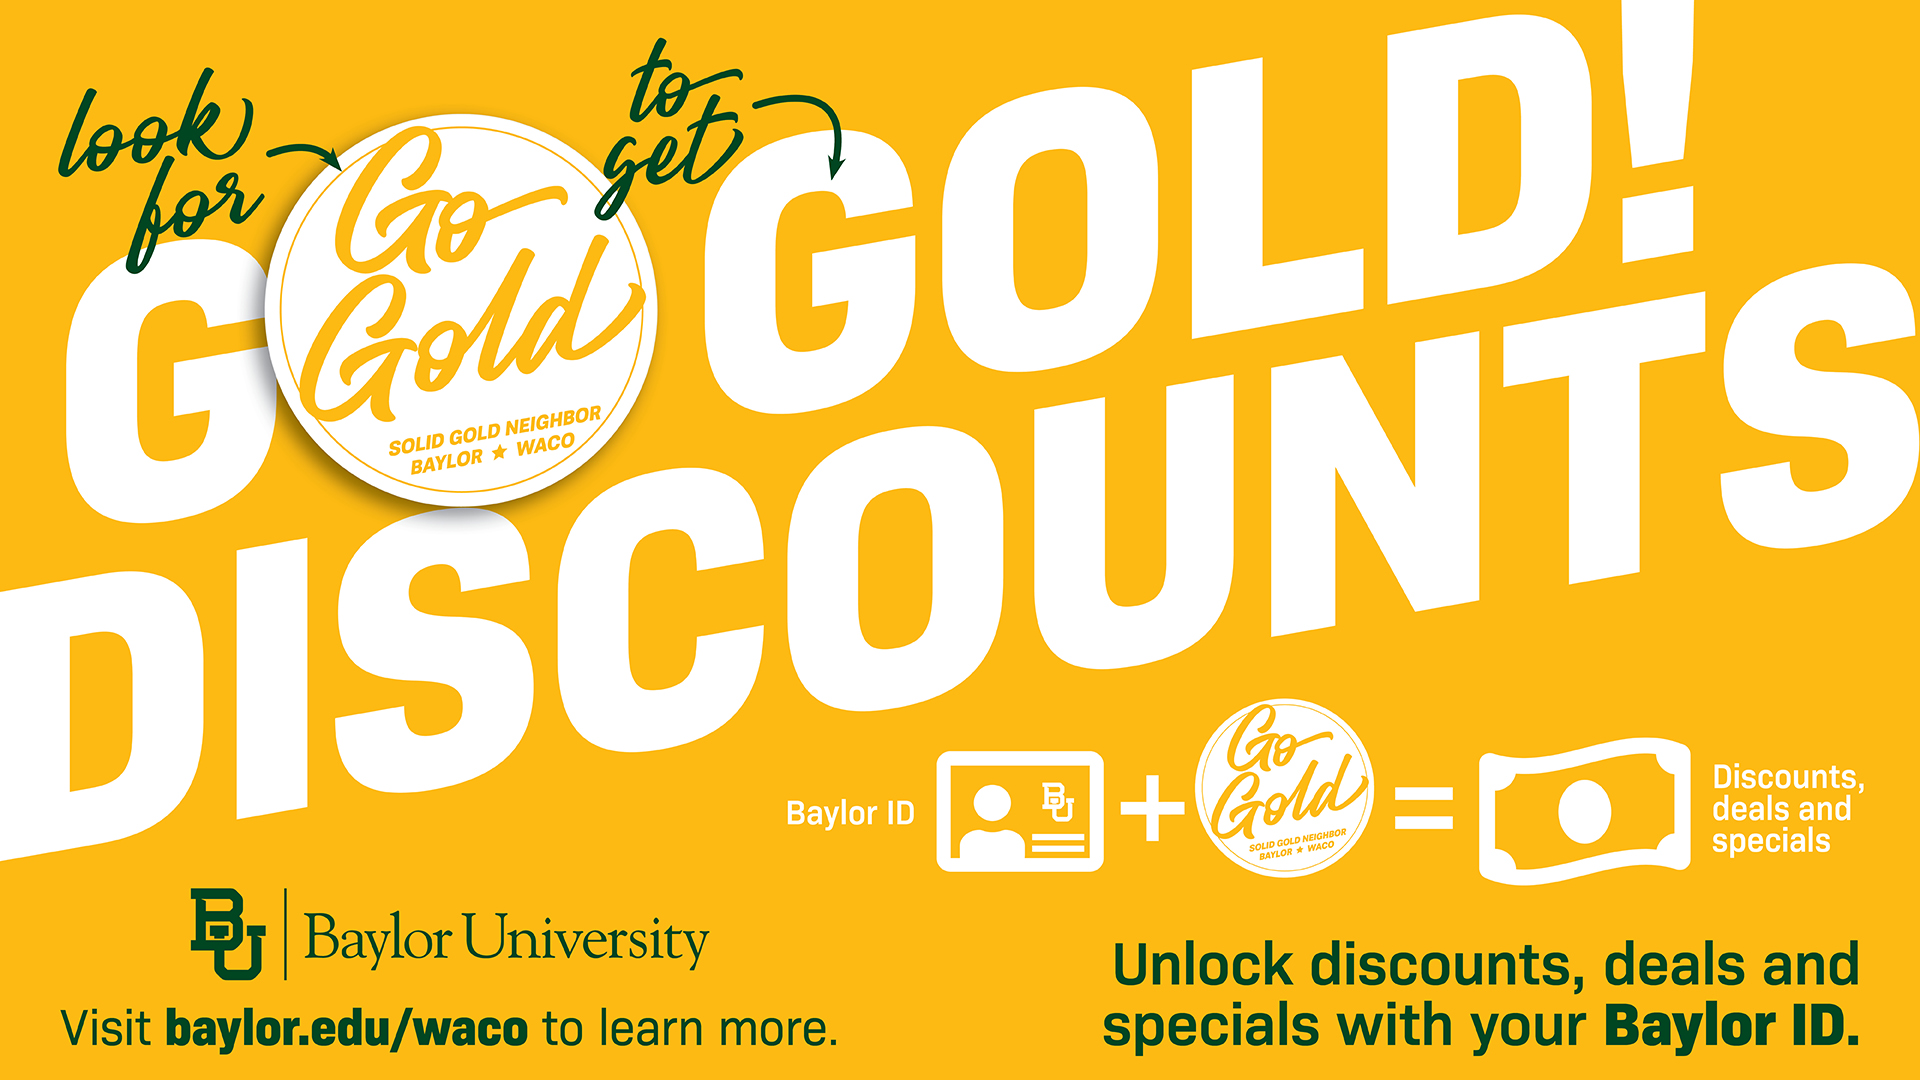 Go Gold! Discount Program